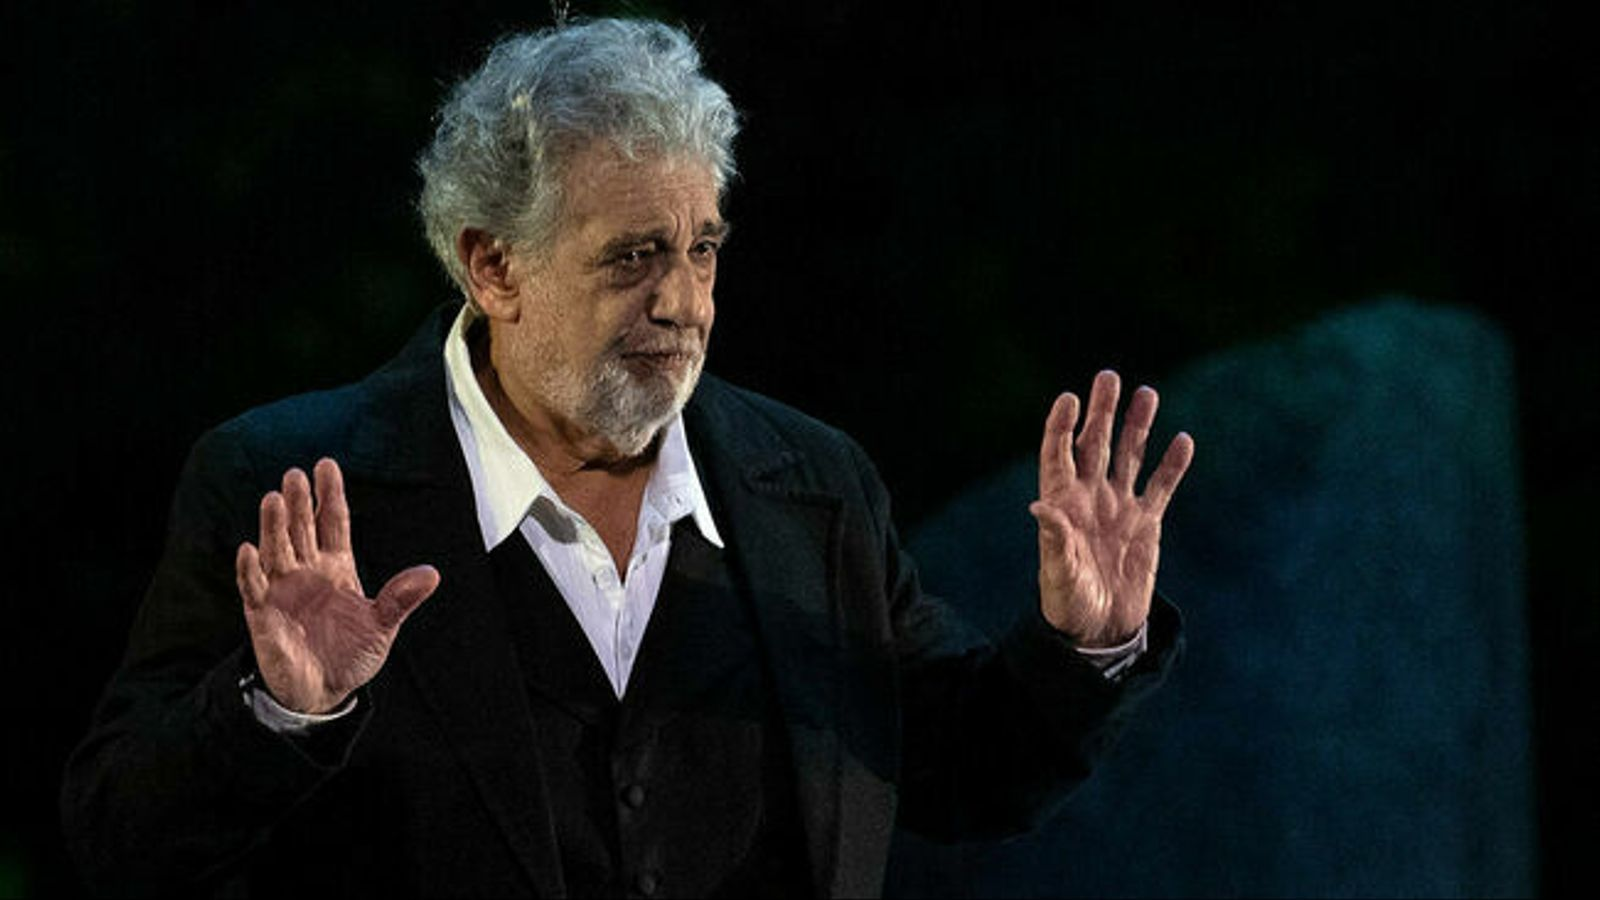 El tenor Plácido Domingo / AFP